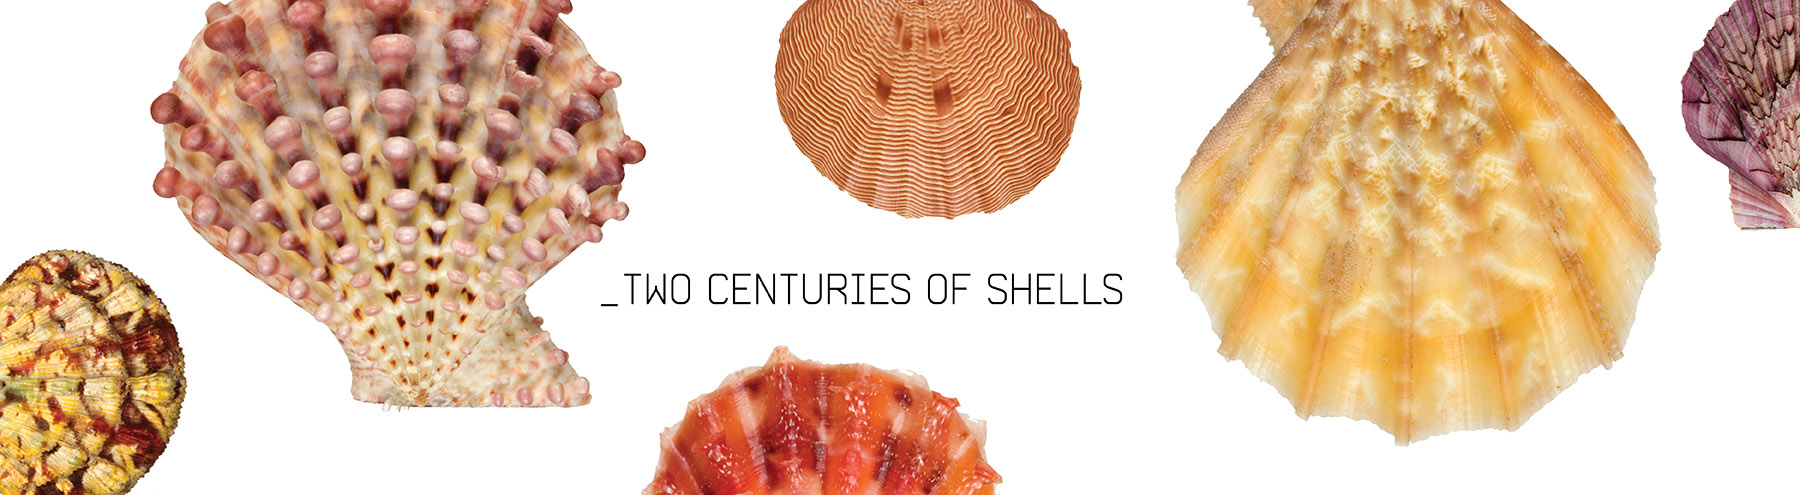 Two Centuries of Shells